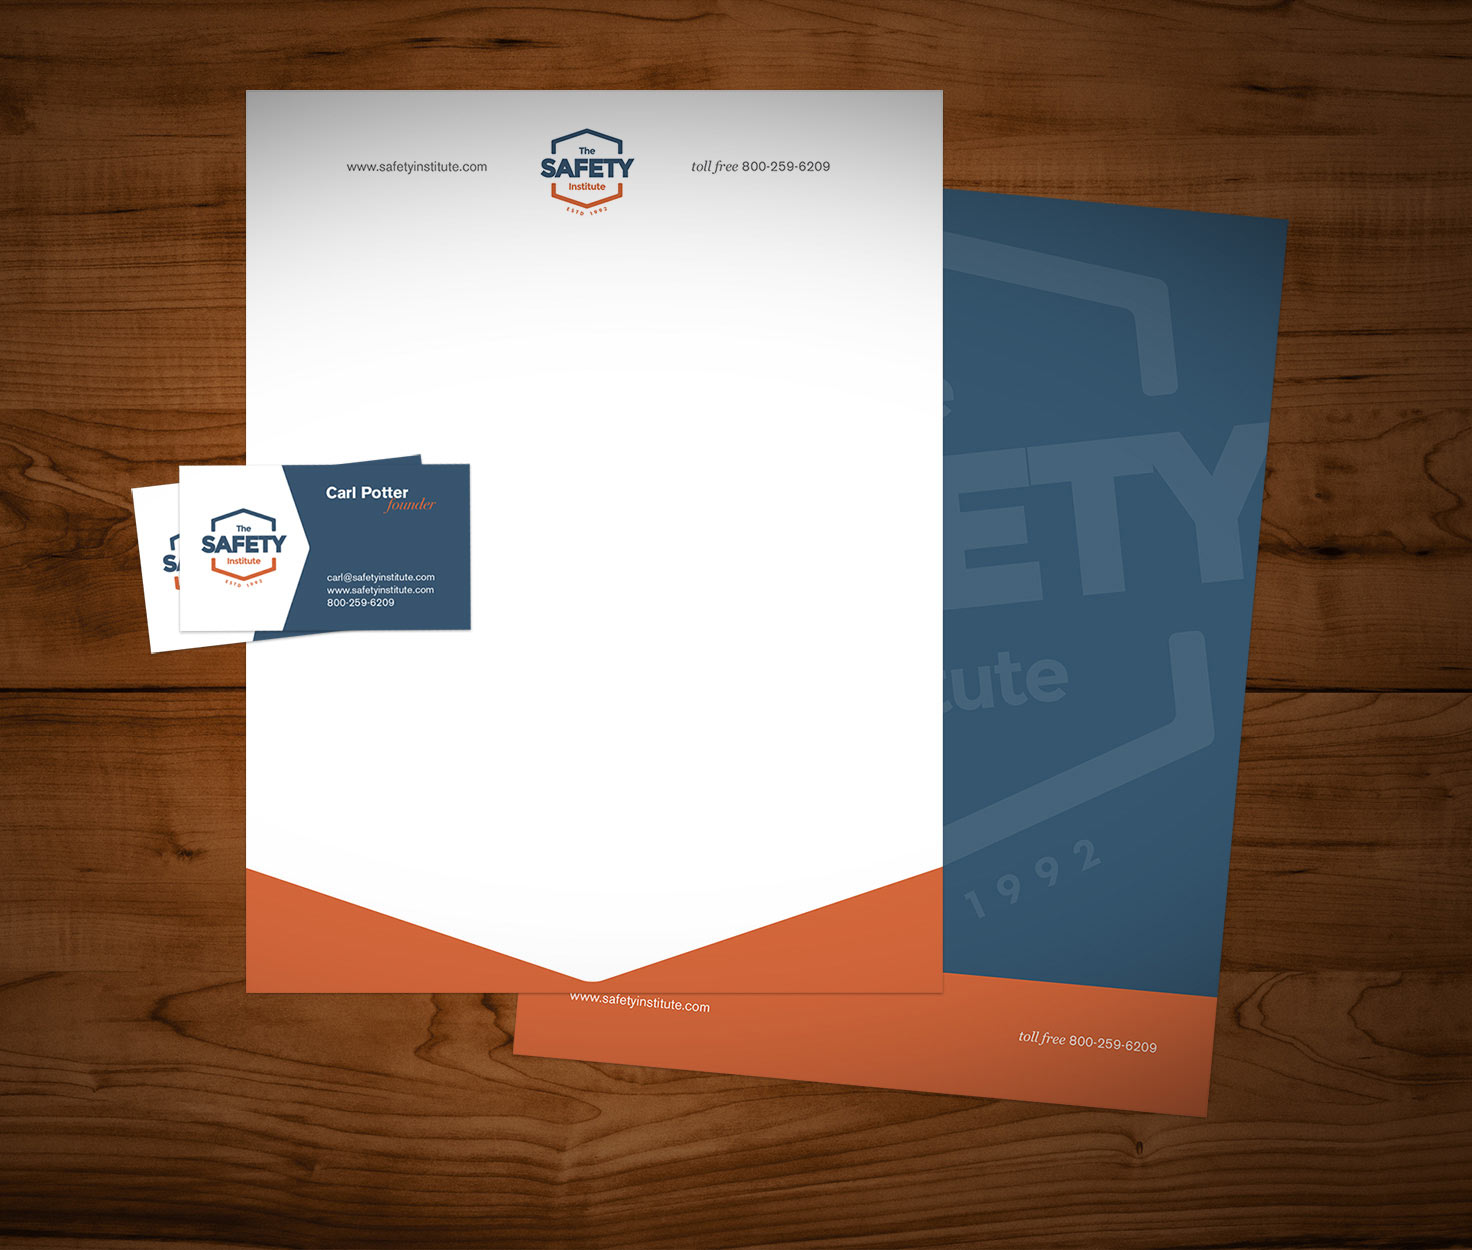 The Safety Institute Letterhead and Business Card Design